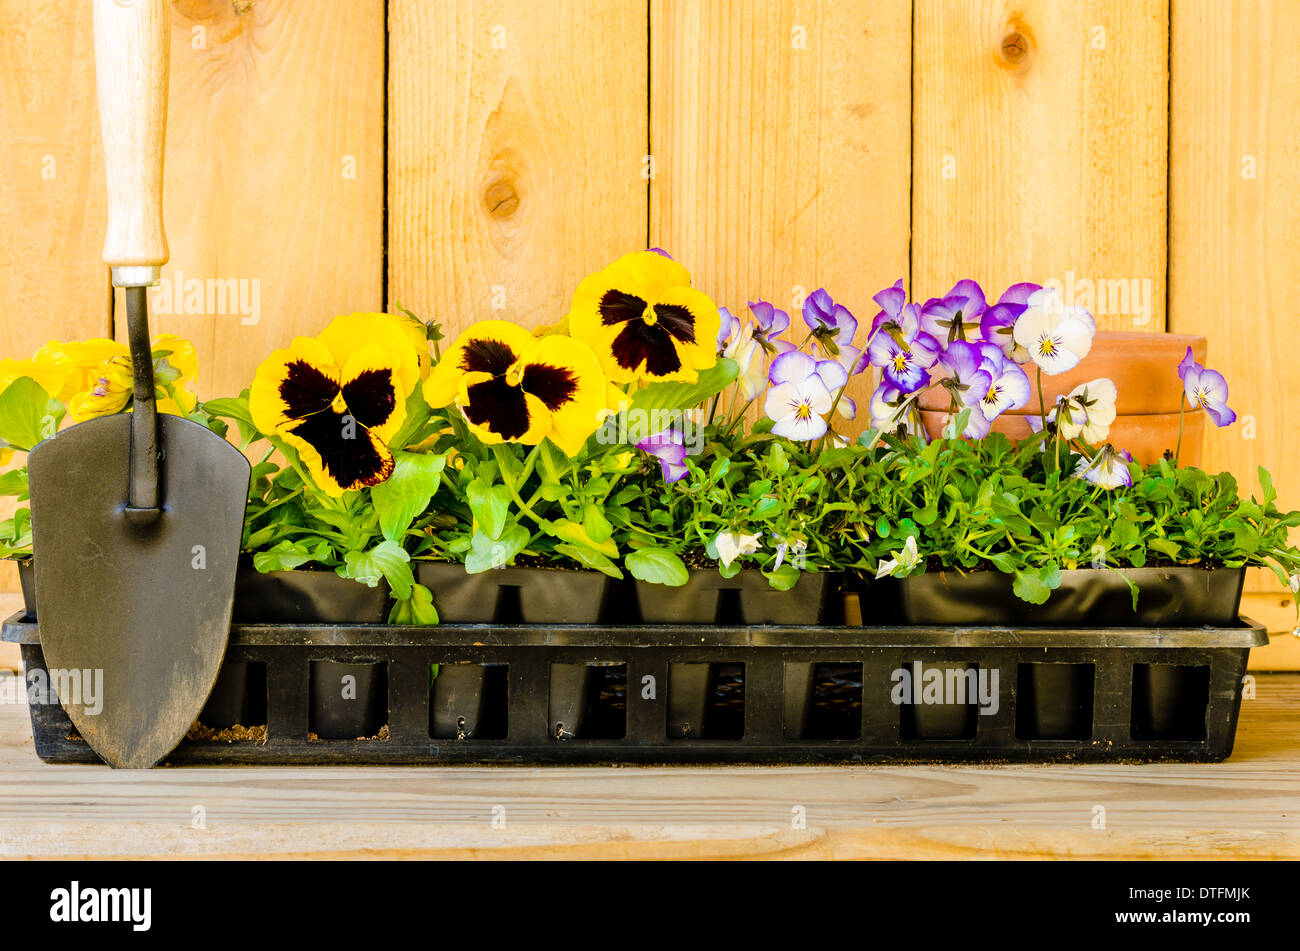 Planting garden with pansies, violas, cultivator, and pots on wood background. - Stock Image